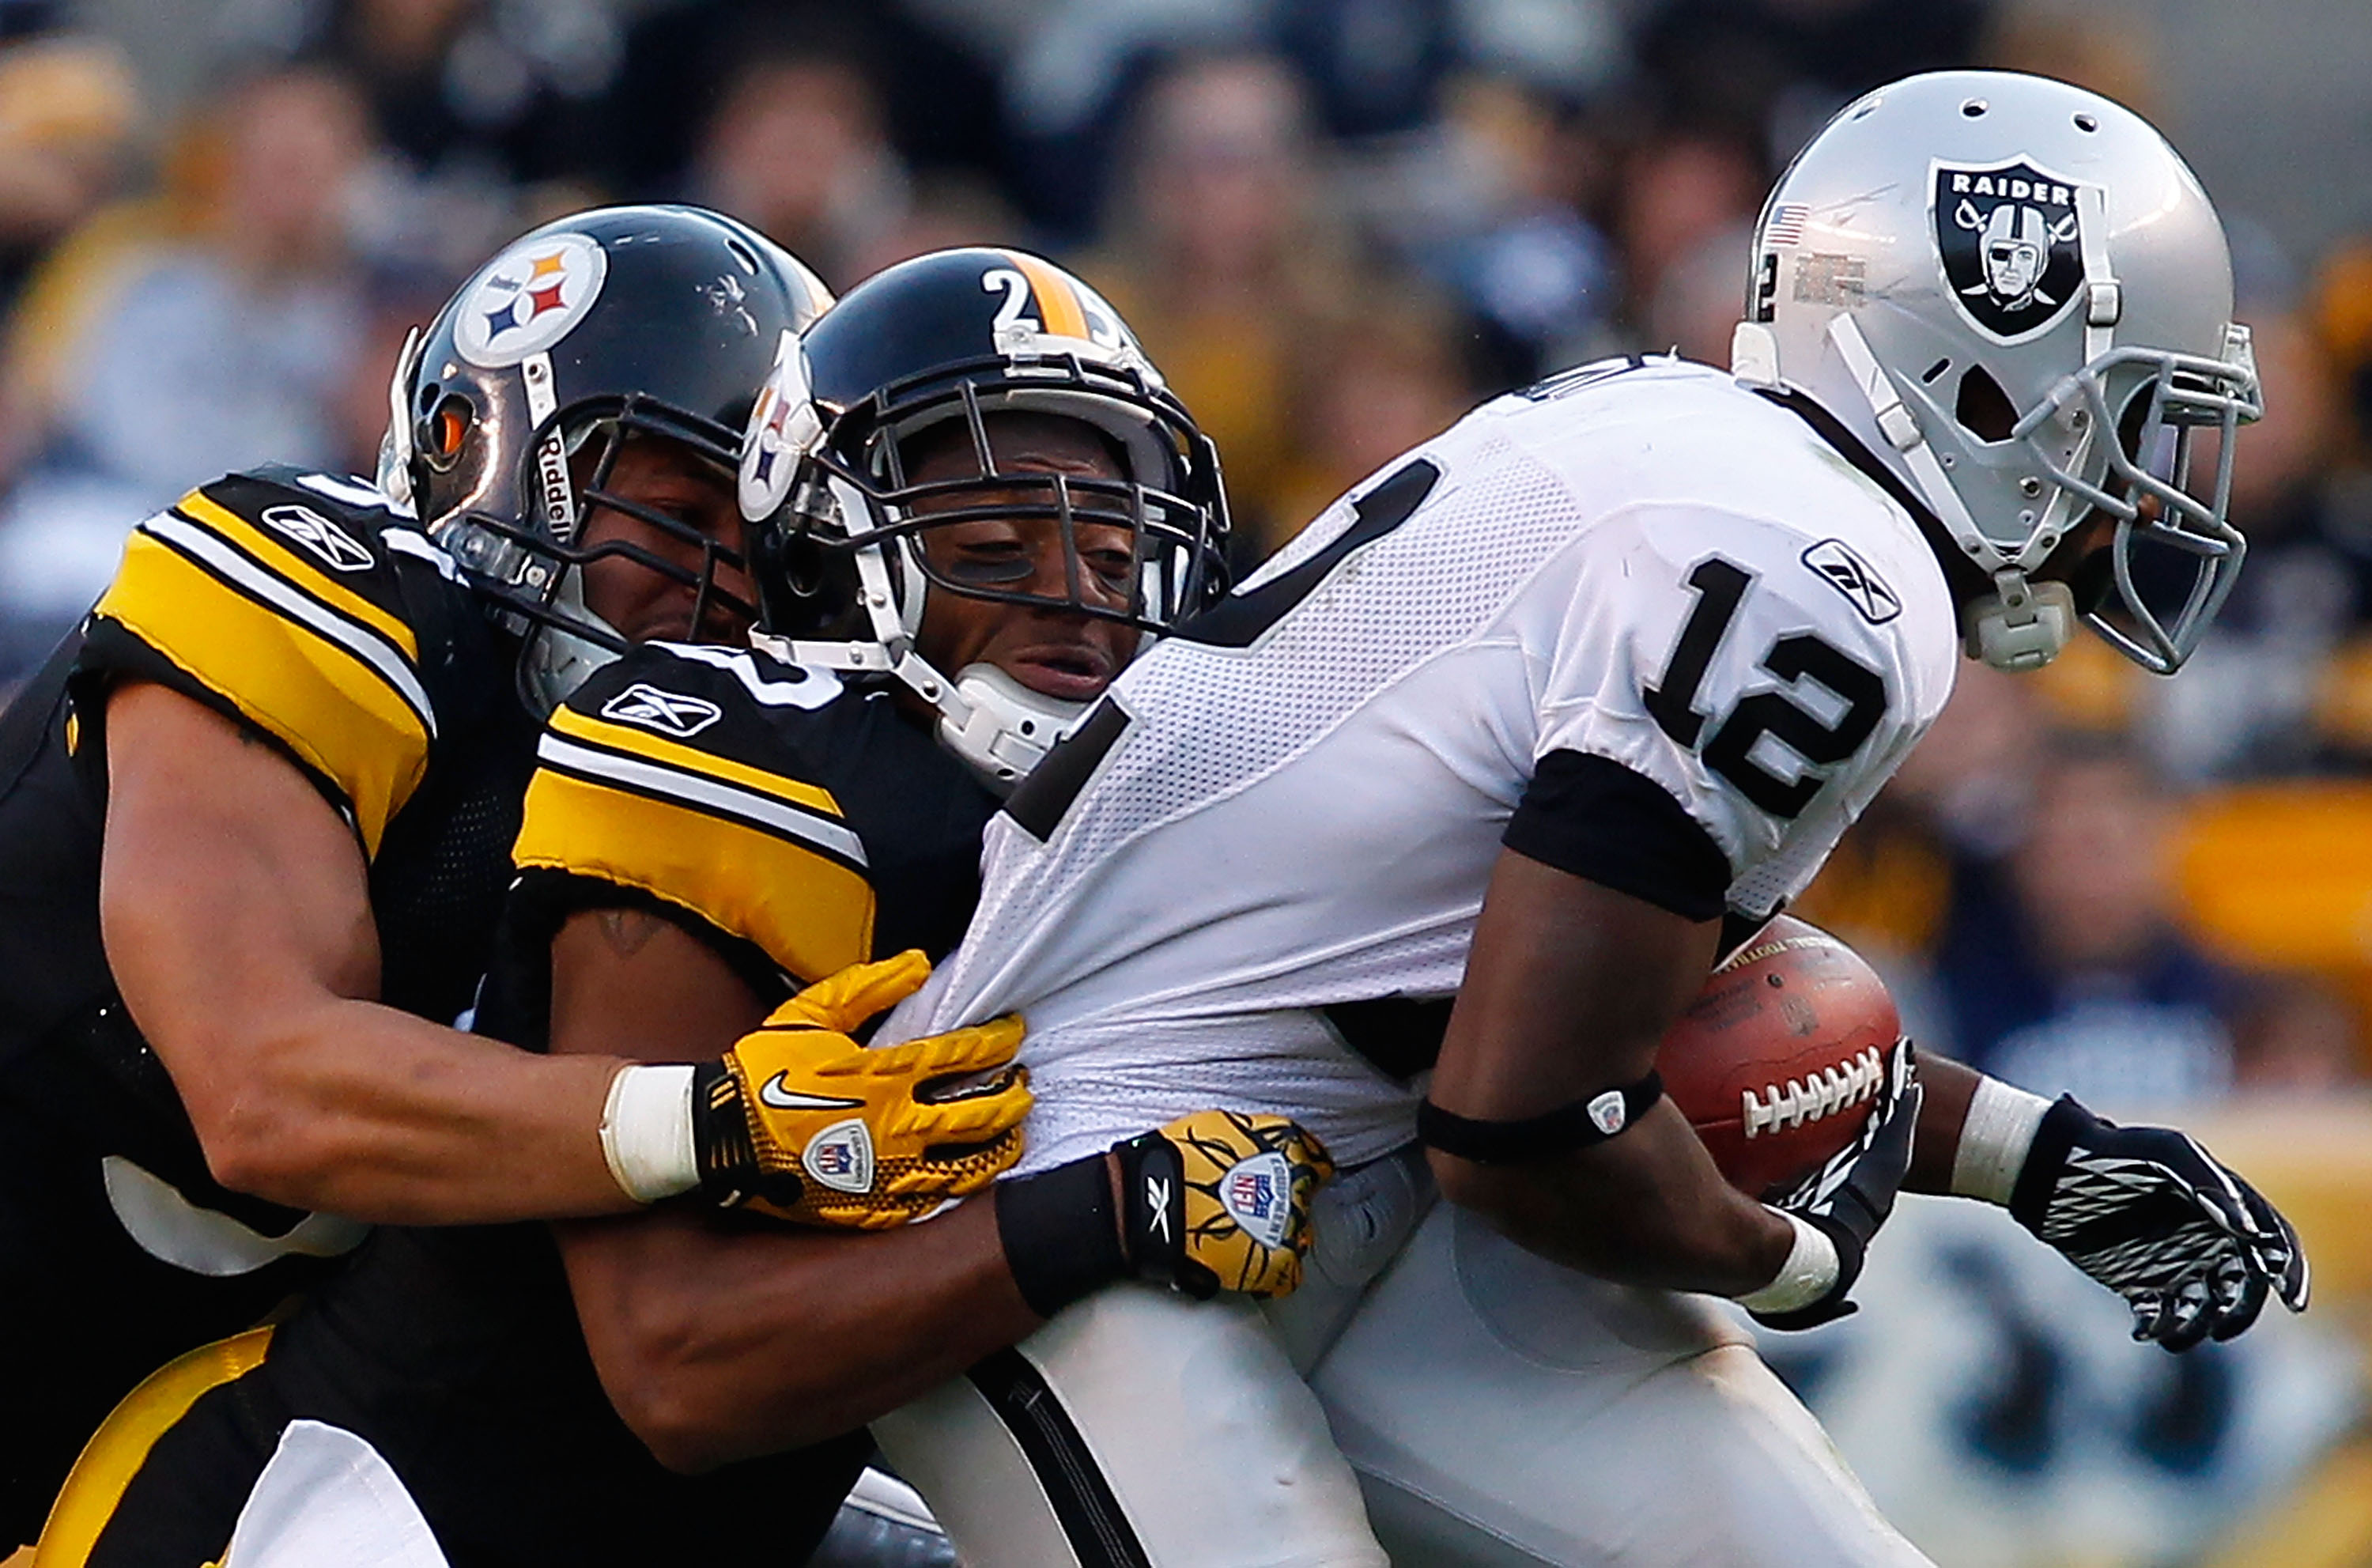 PITTSBURGH - NOVEMBER 21:  Ryan Clark #25 and James Farrior #51 of the Pittsburgh Steelers tackle Jacoby Ford #12 of the Oakland Raiders during the game on November 21, 2010 at Heinz Field in Pittsburgh, Pennsylvania.  (Photo by Jared Wickerham/Getty Imag